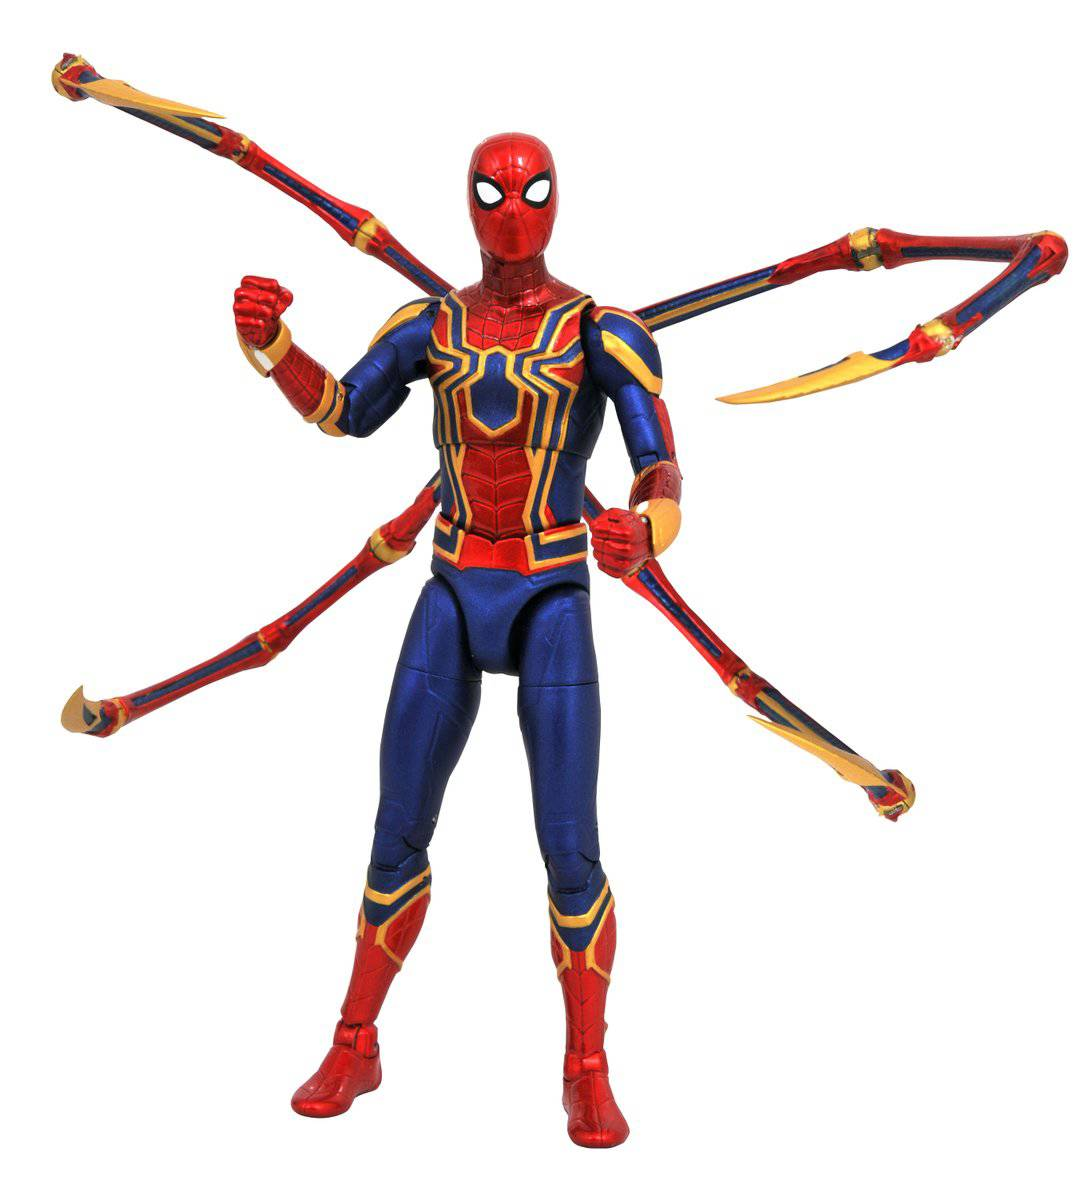 Marvel Select Iron Spider Infinity War Action Figure